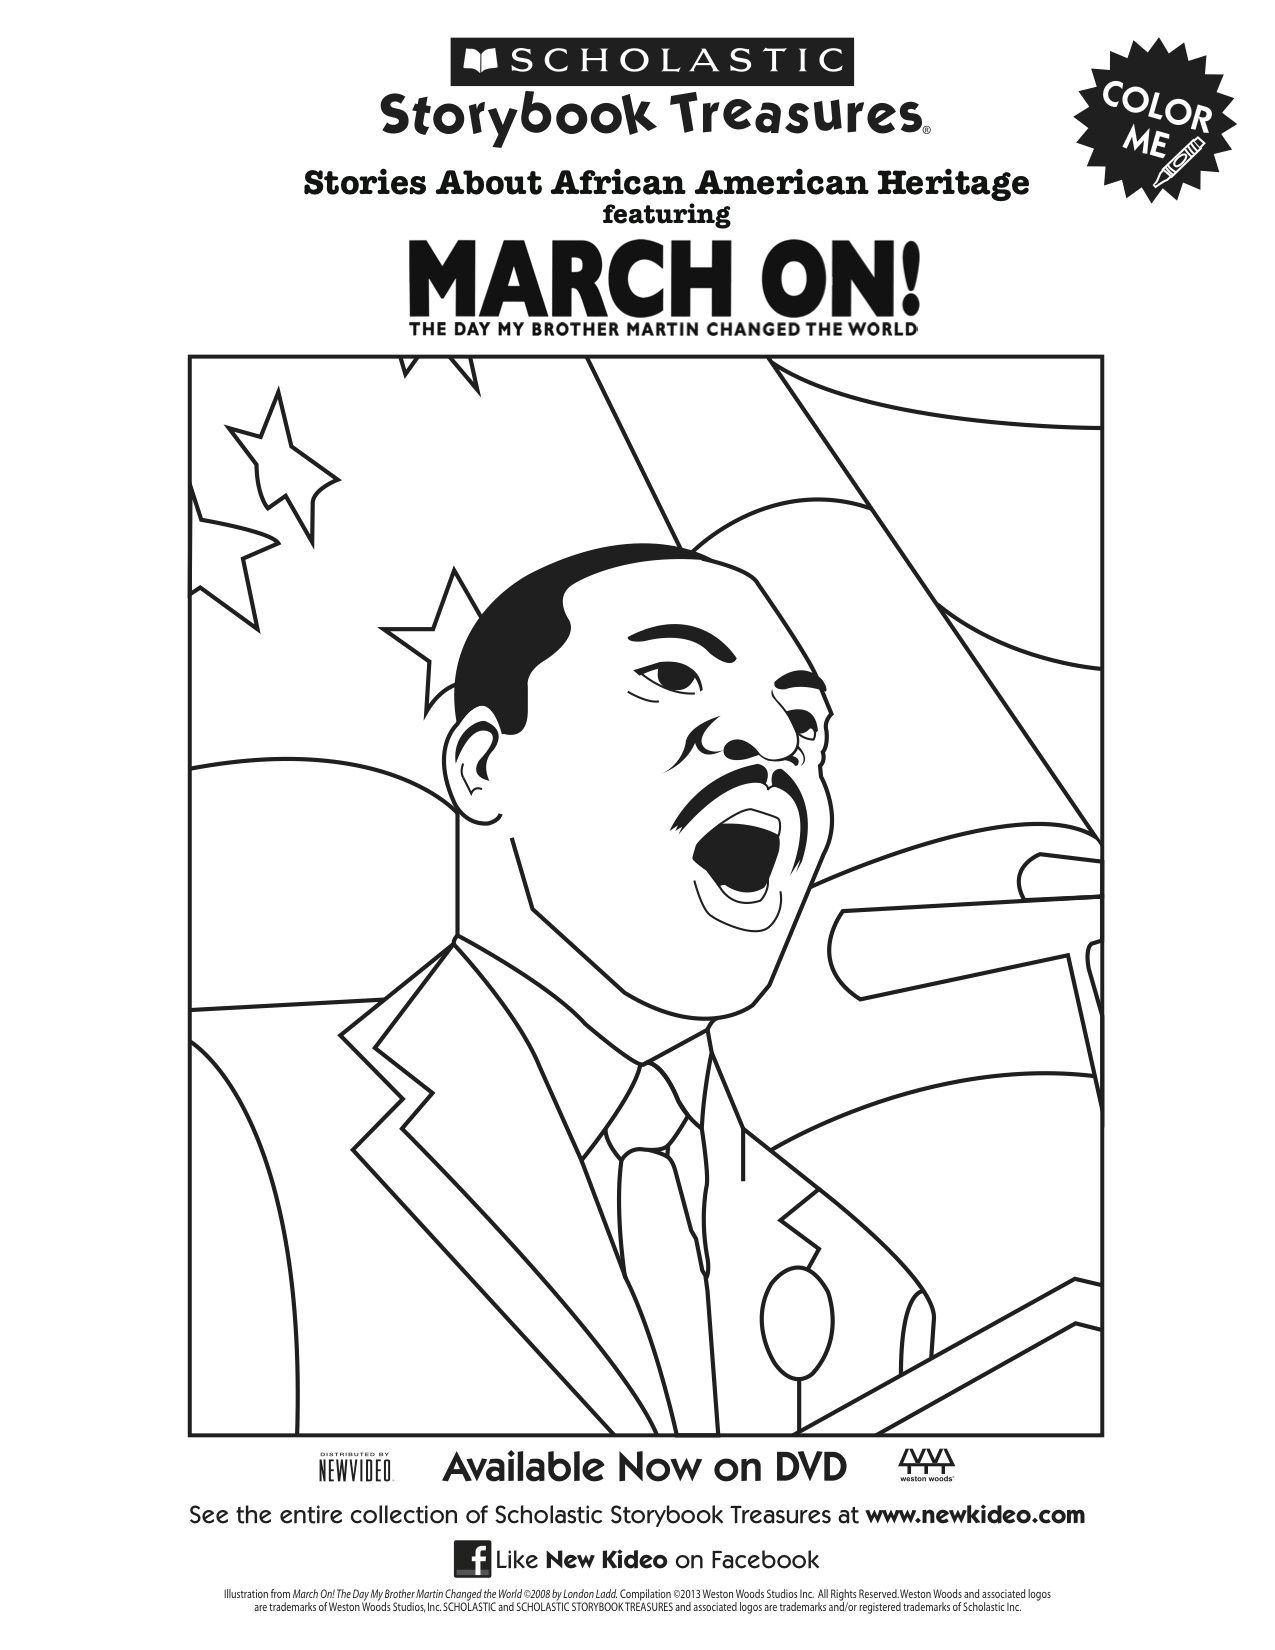 martin luther king jr coloring page martin luther king jr day coloring pages print for free luther coloring jr martin page king